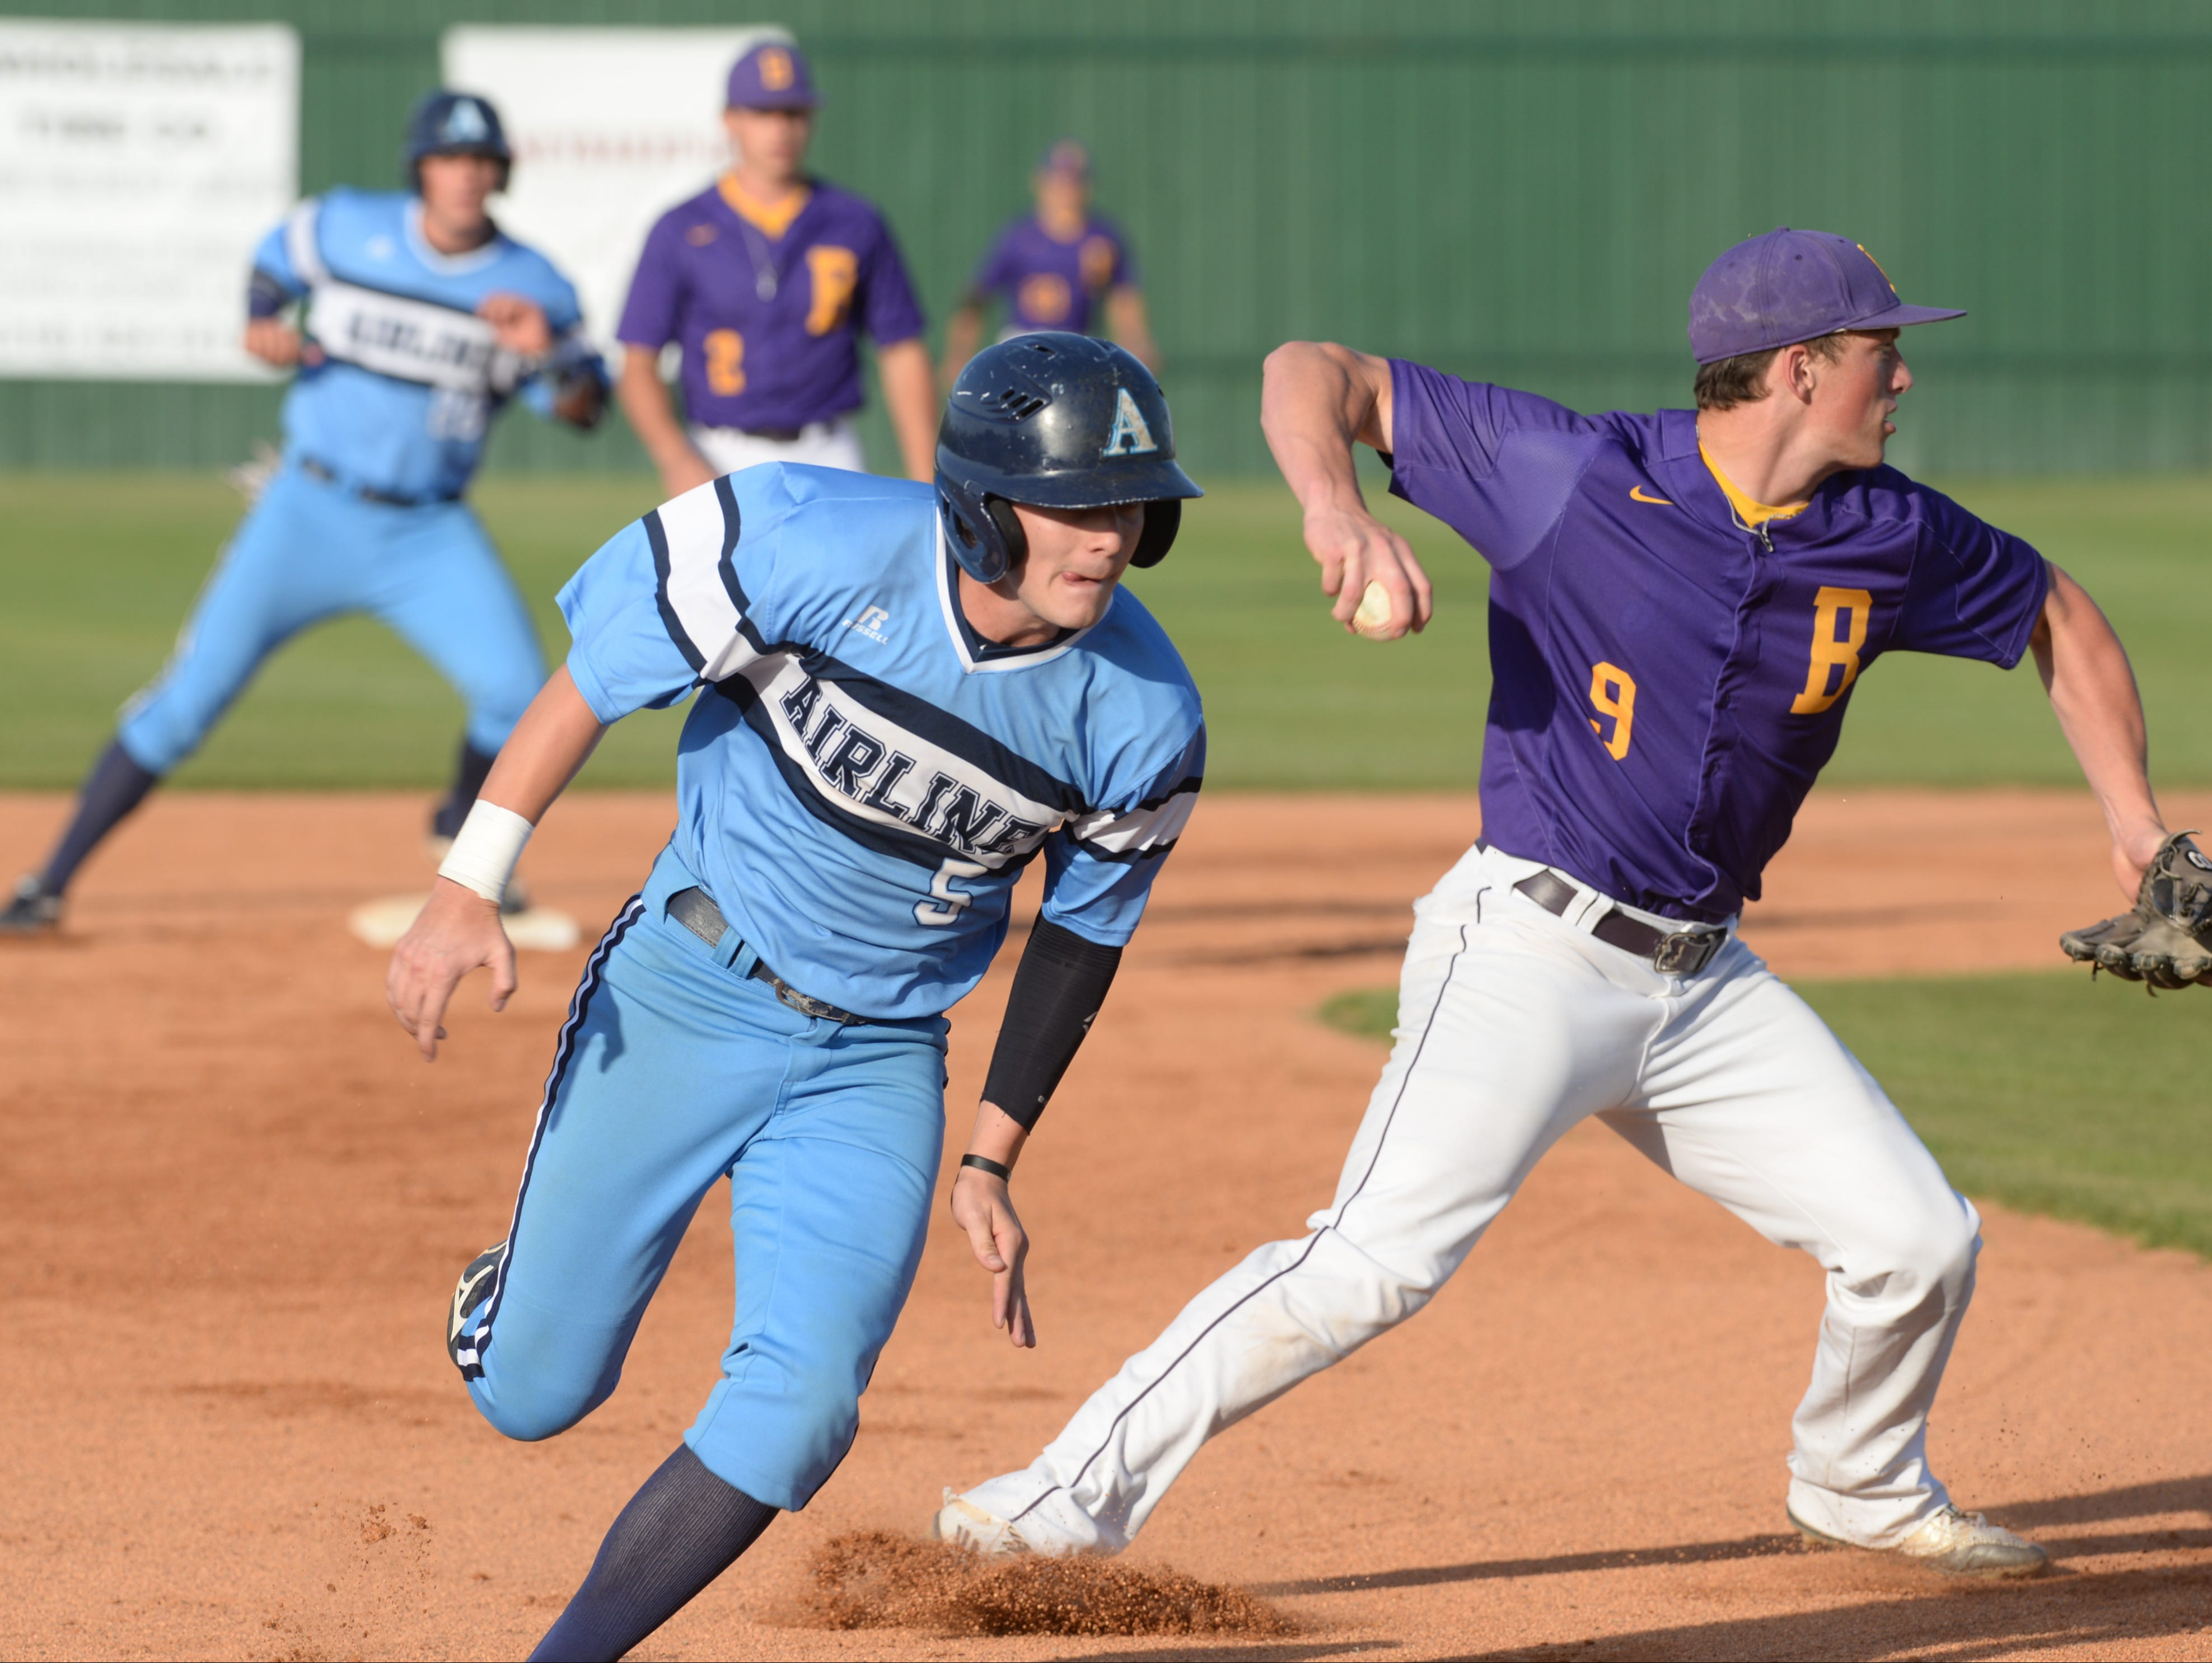 Hayden Waxley makes his way to third to load tthe bases as third baseman Steel Netterville misses the play at first.